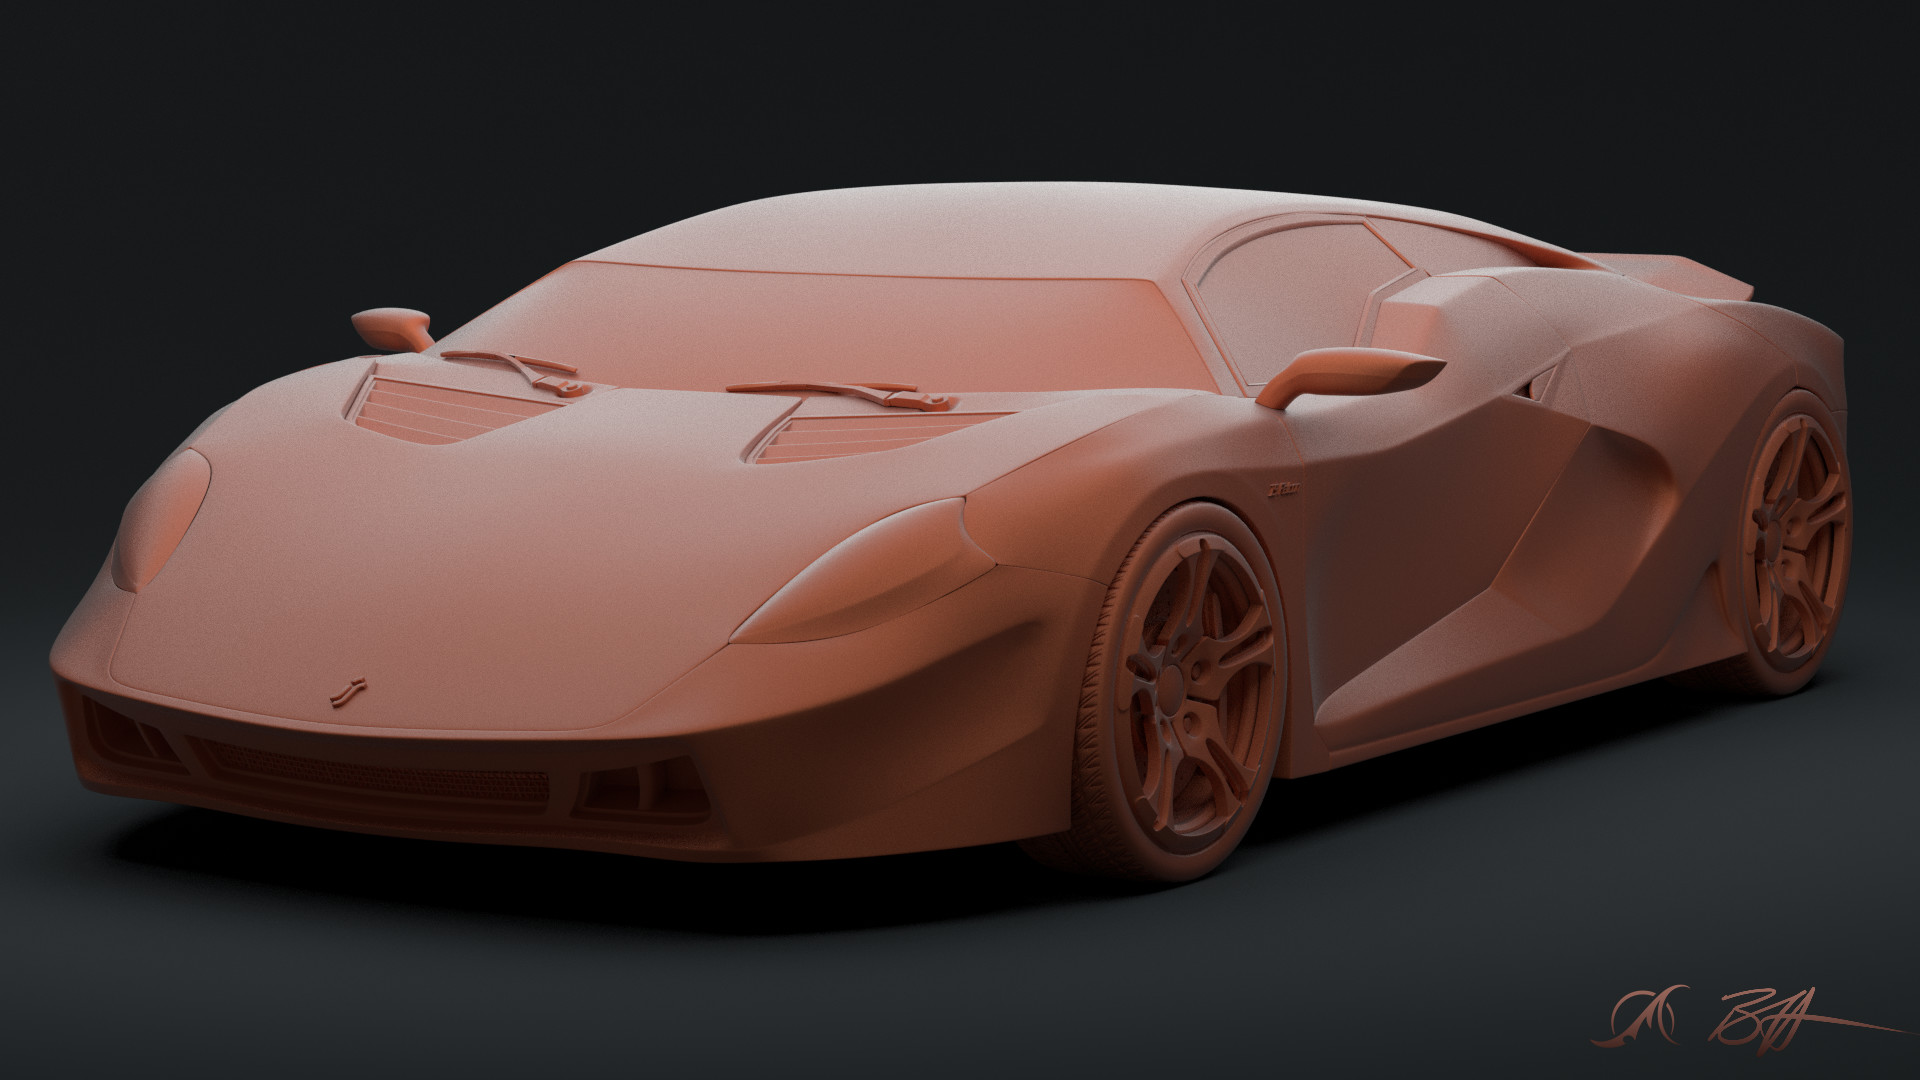 The finished model from BlendMasters Volume 1 rendered in a clay shader from BlendMasters Volume 2